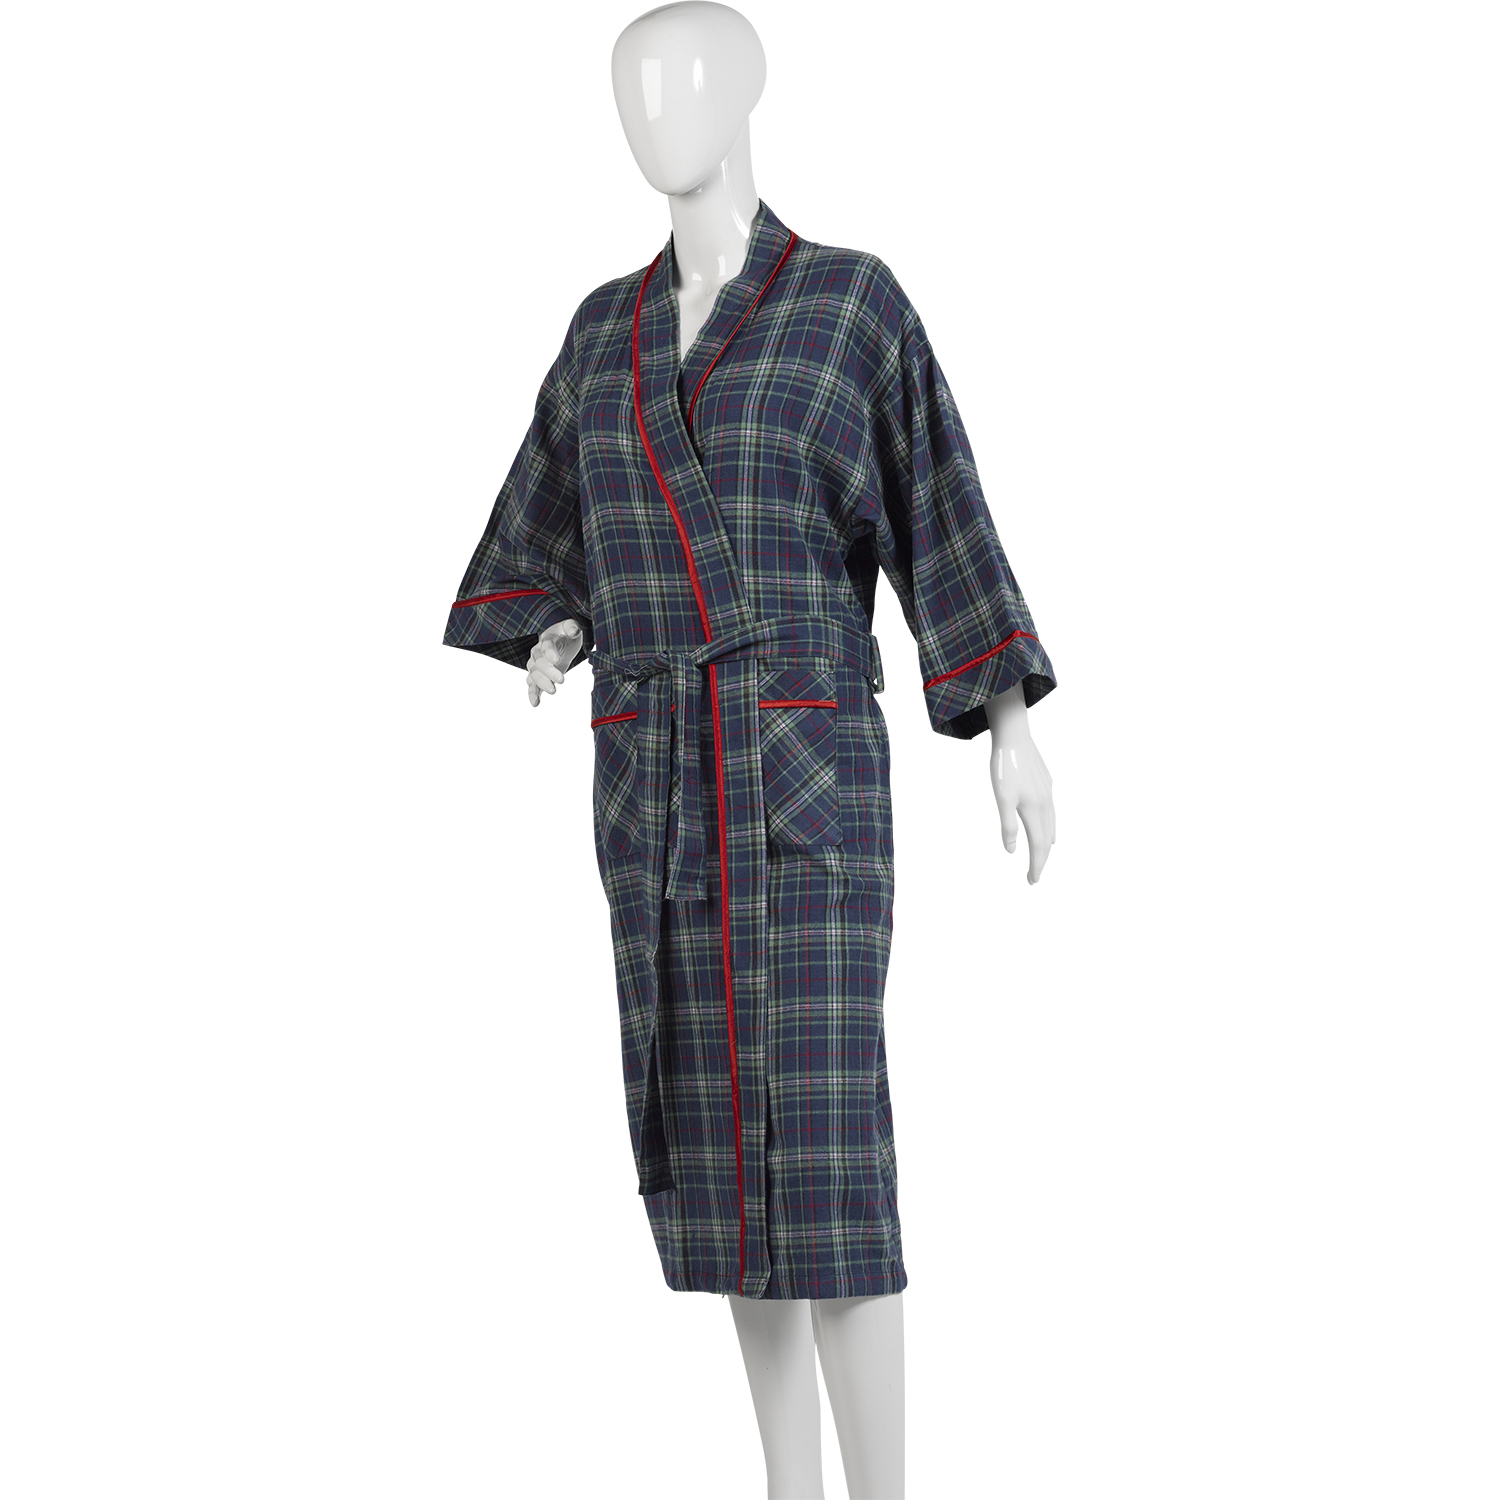 10dd21af4f Royal Stewart Tartan Dressing Gown from Magee of Donegal at Woods Of  Shropshire - Finest Menswear